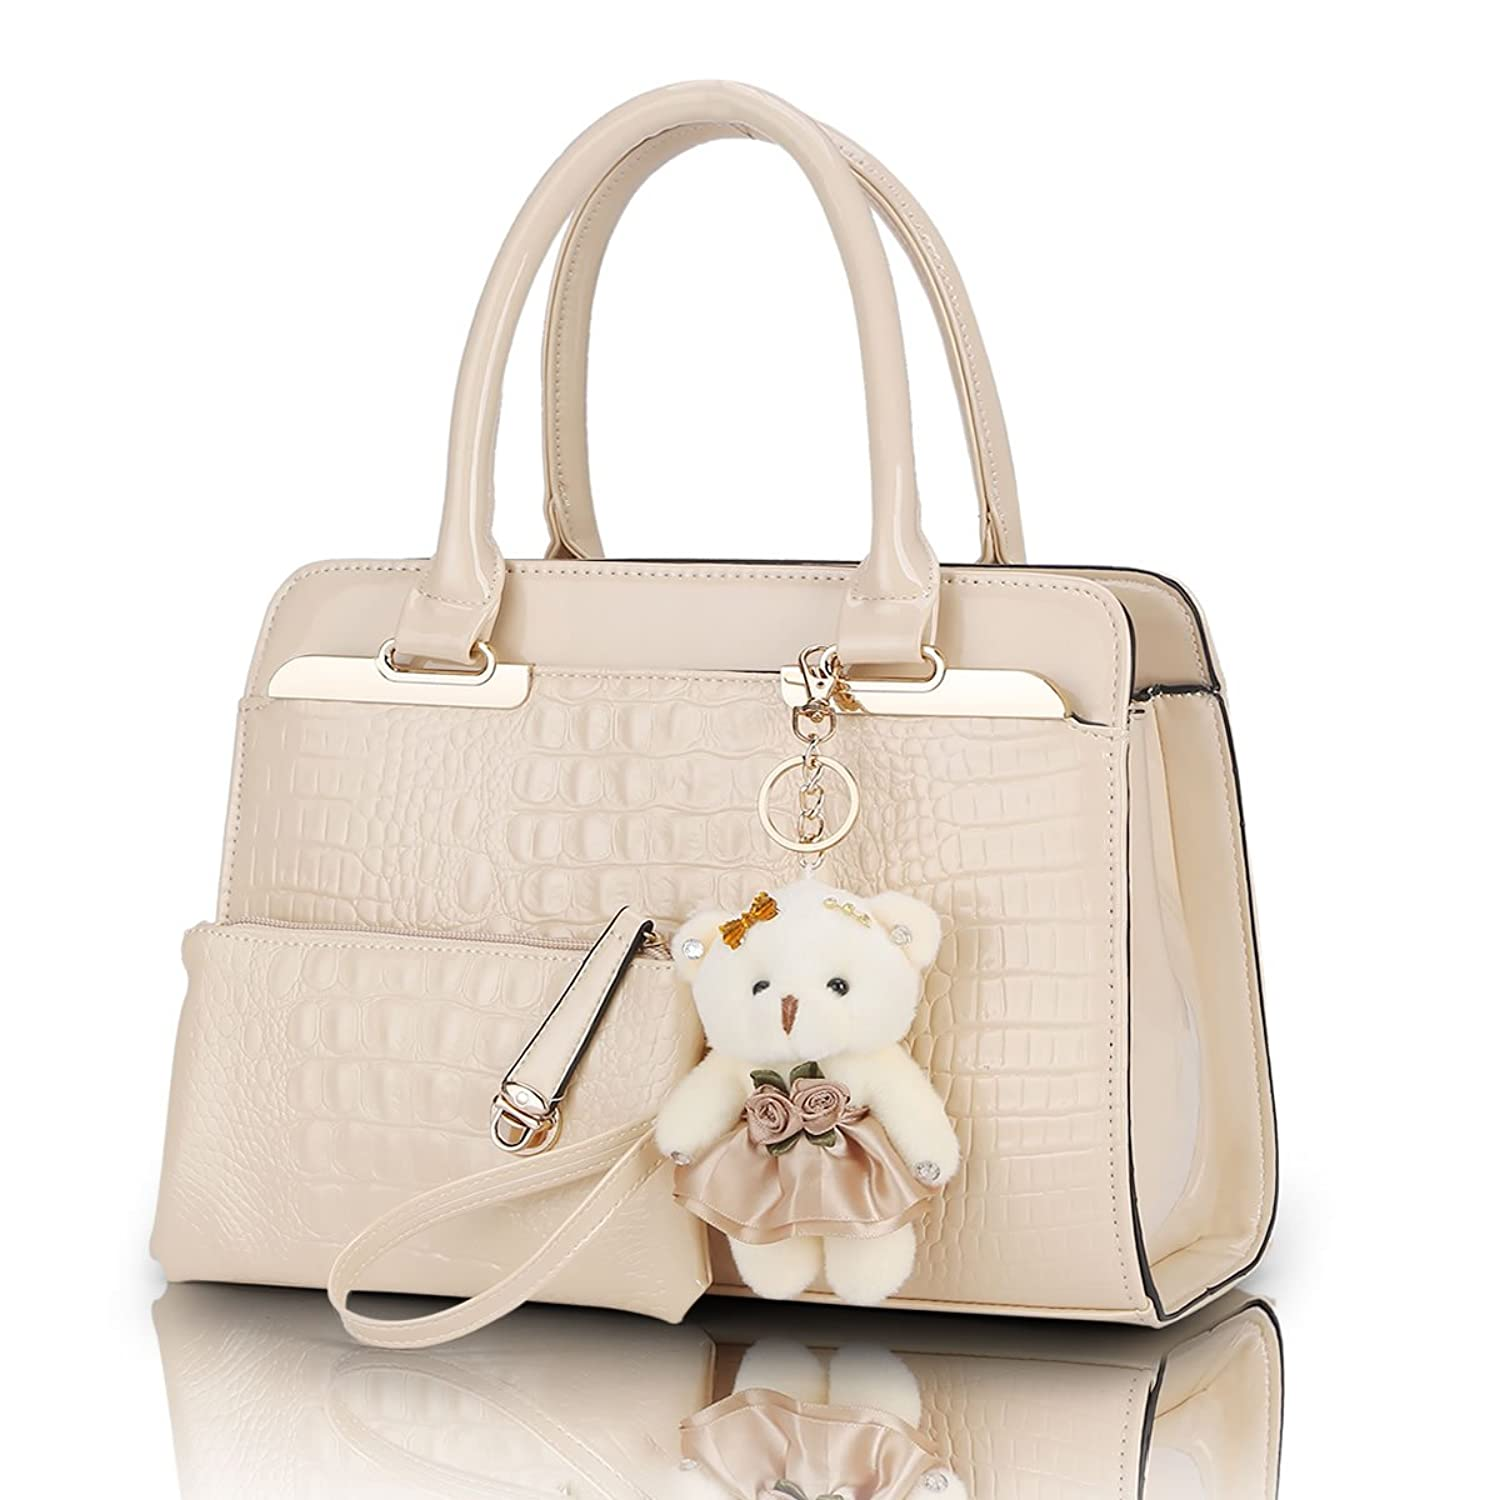 SUNNY SHOP 2 Bags/Set With Bear Toy Fashion Elegant Alligator Pattern Patent Leather Women Shoulder Bags